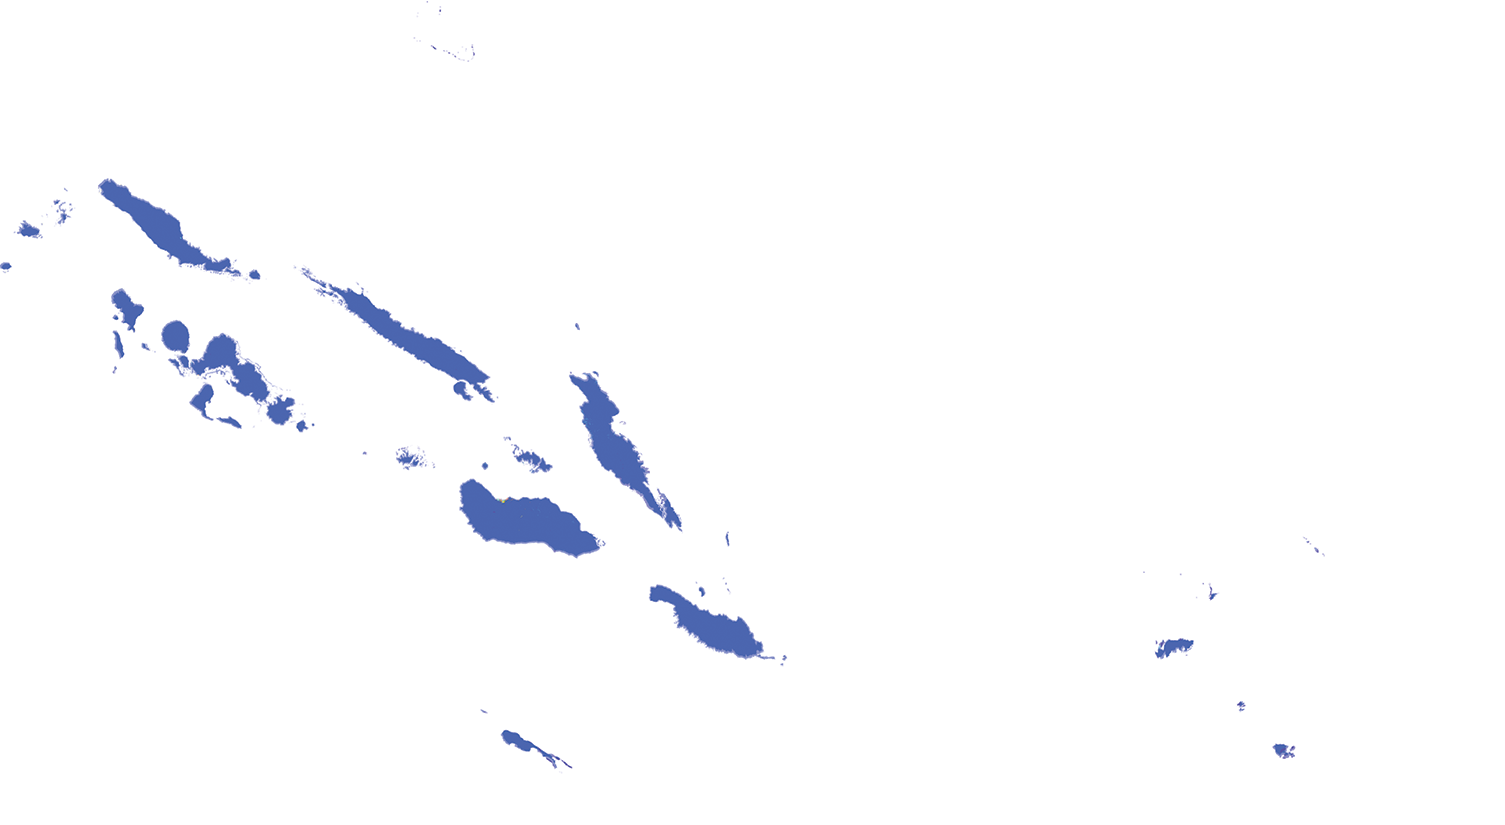 Solomon Islands - Number and distribution of pregnancies (2012)